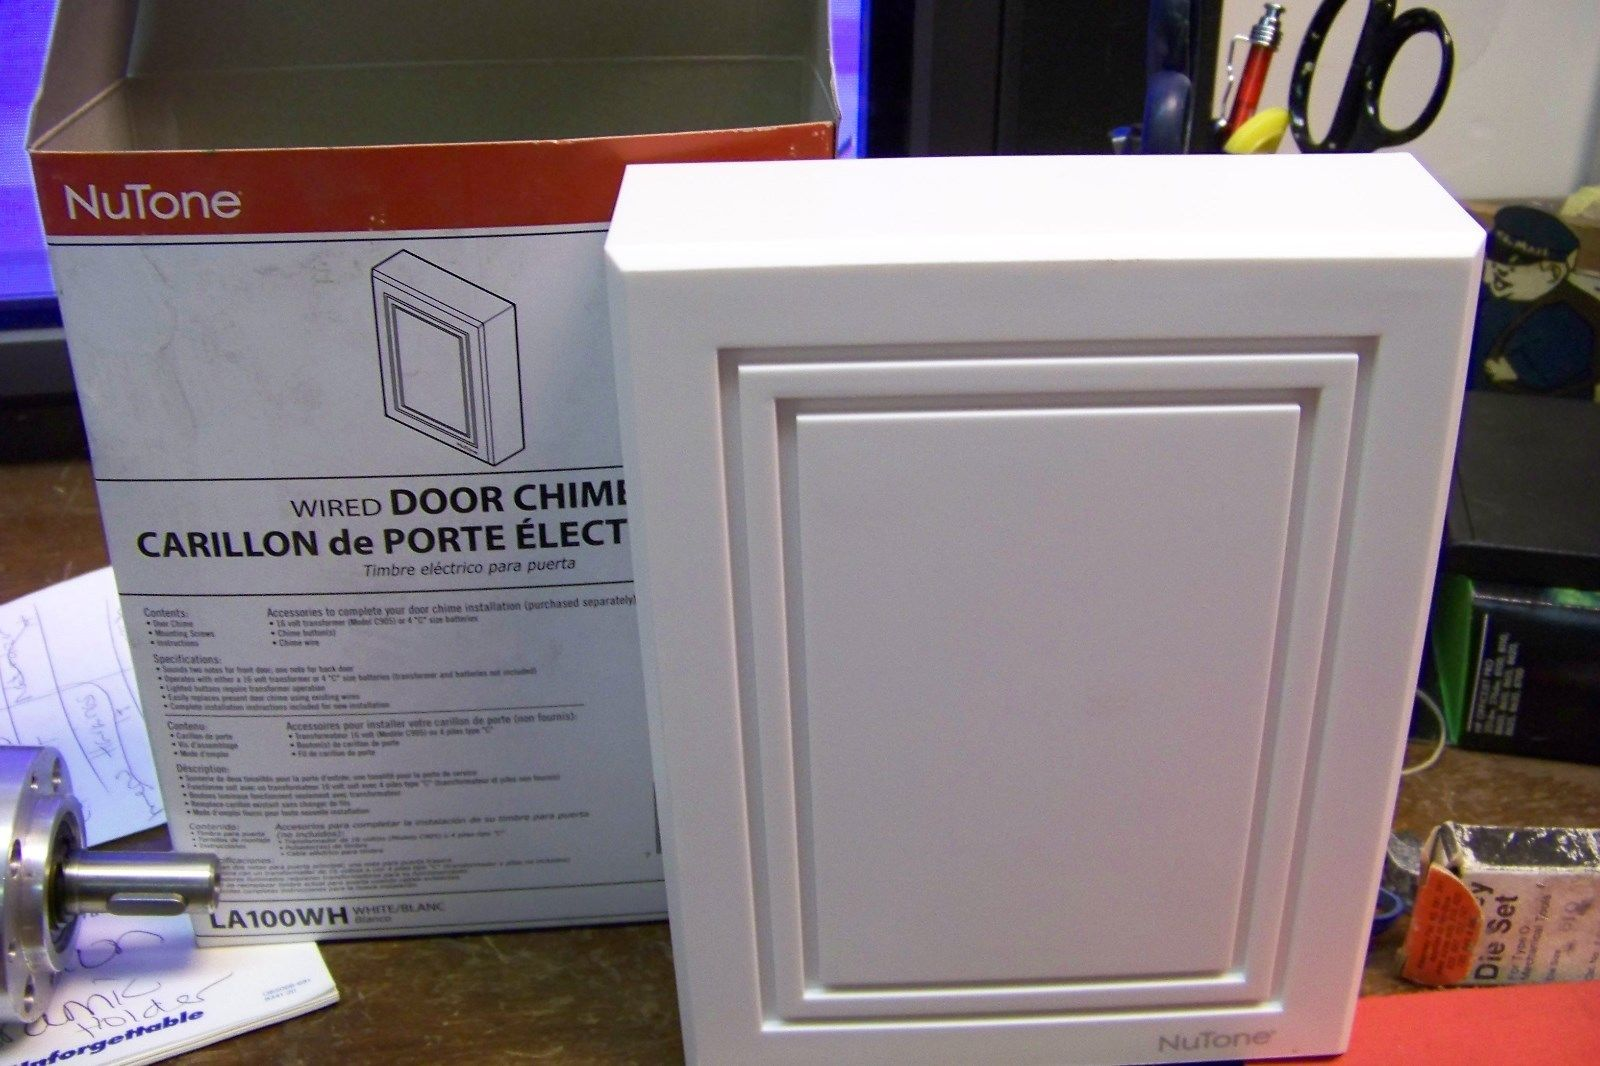 NuTone Wired Door Chime: 1 listing